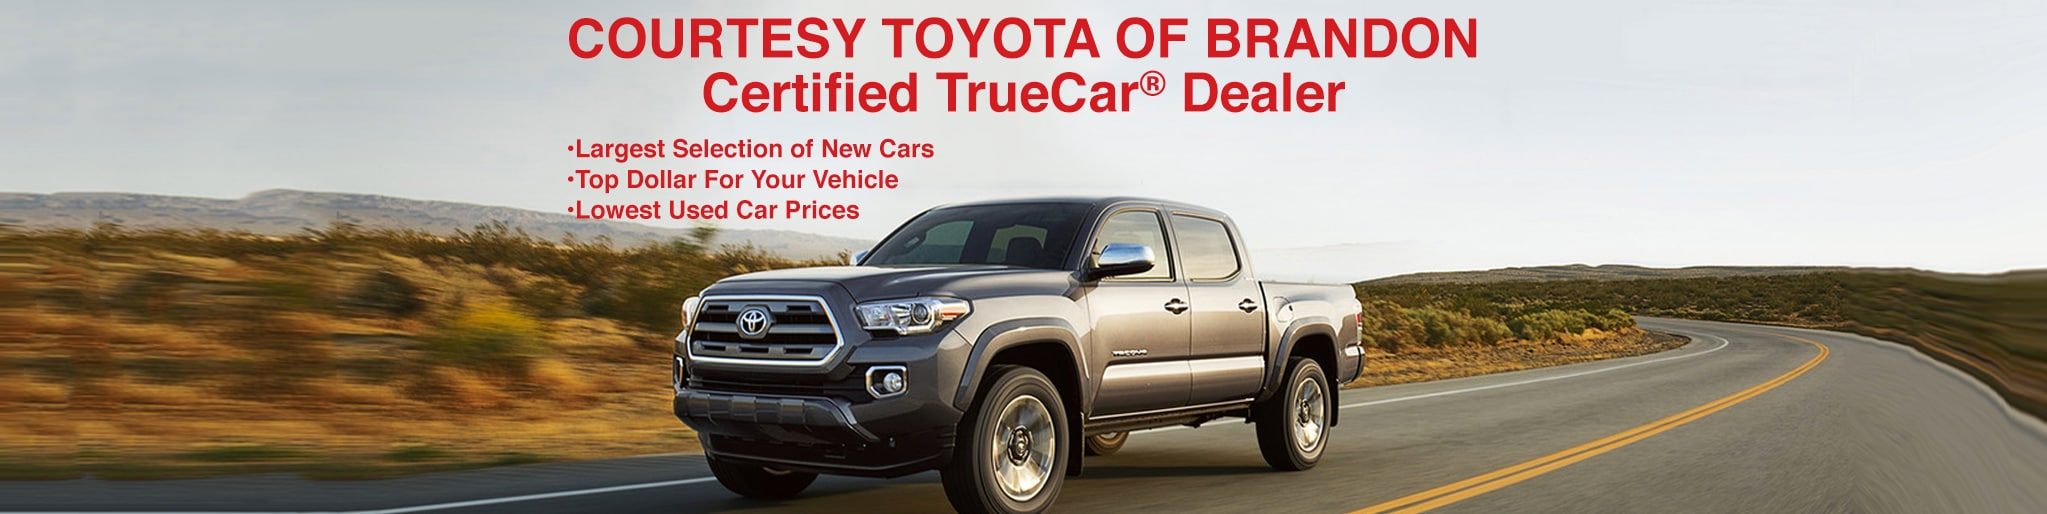 Used Car True Car >> Toyota Truecar Dealer New Used Toyota Certified Truecar Dealer Tampa